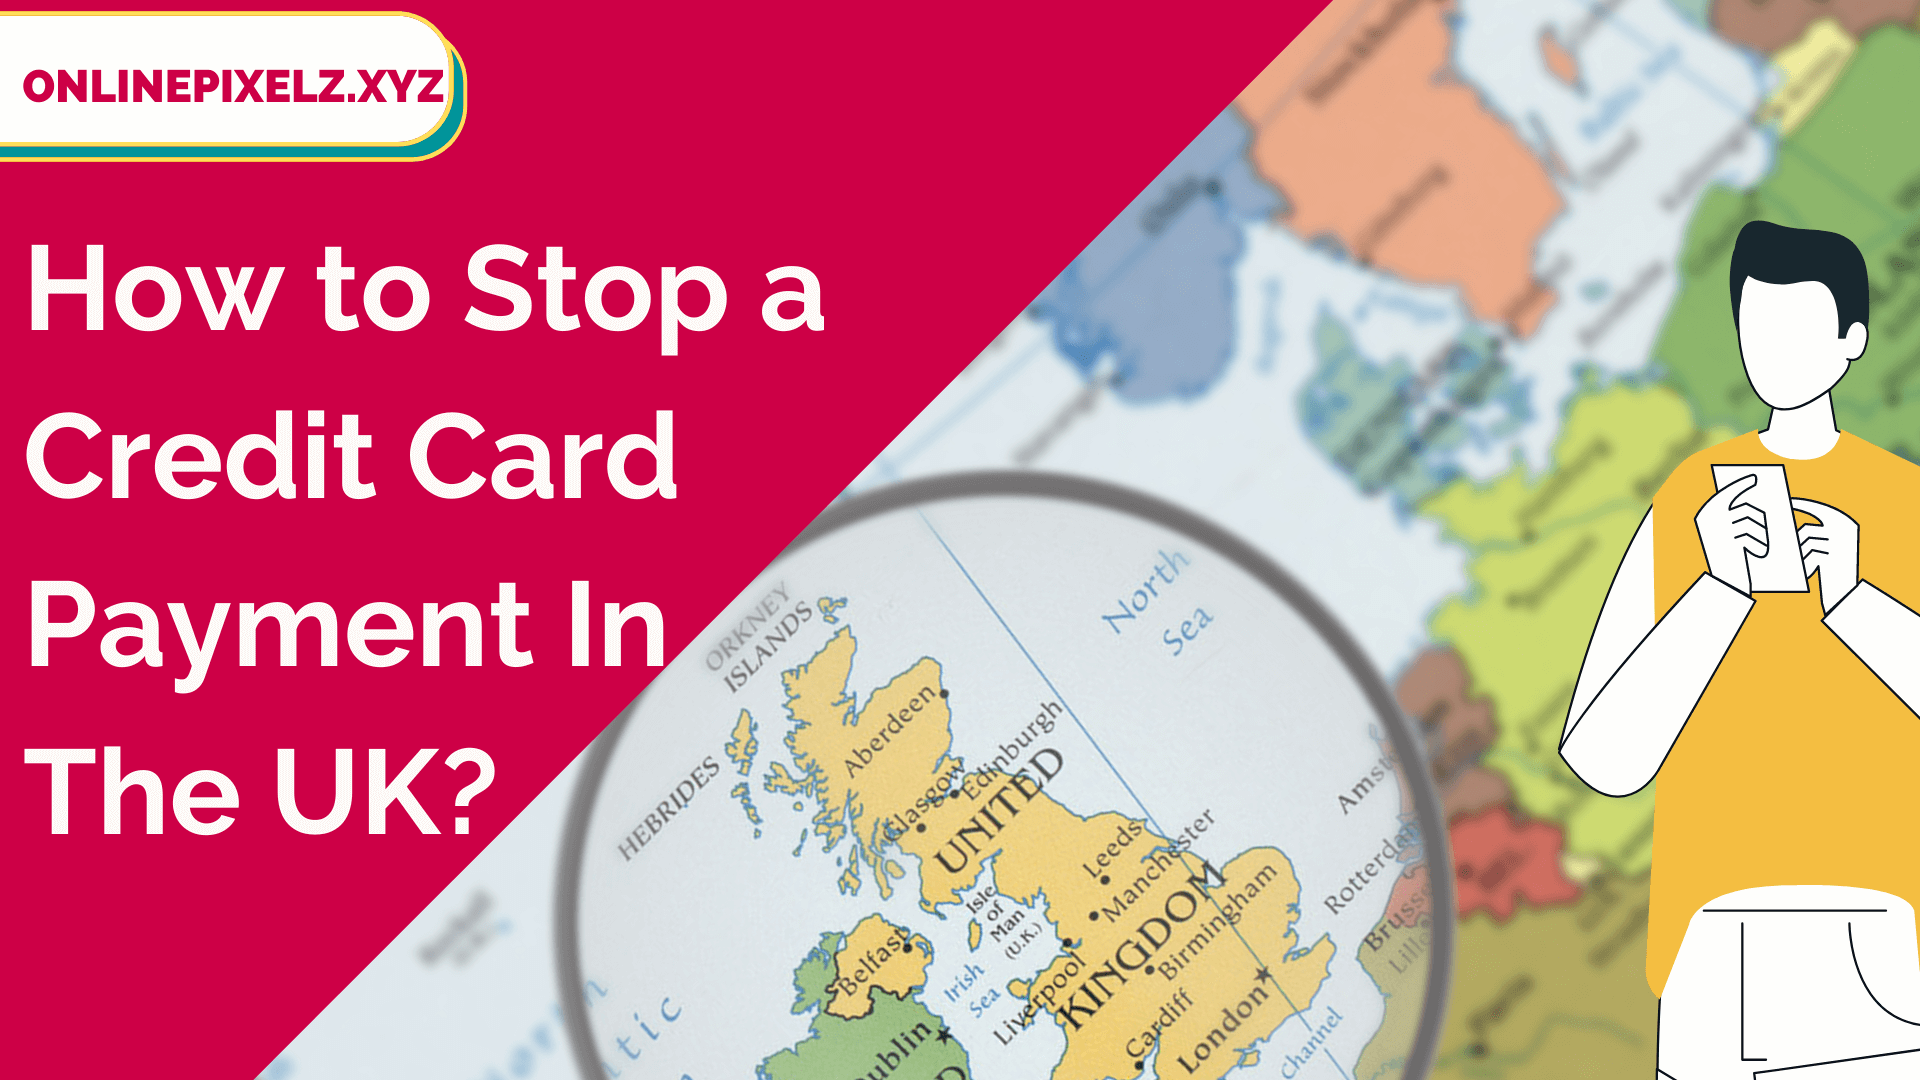 How to Stop a Credit Card Payment UK